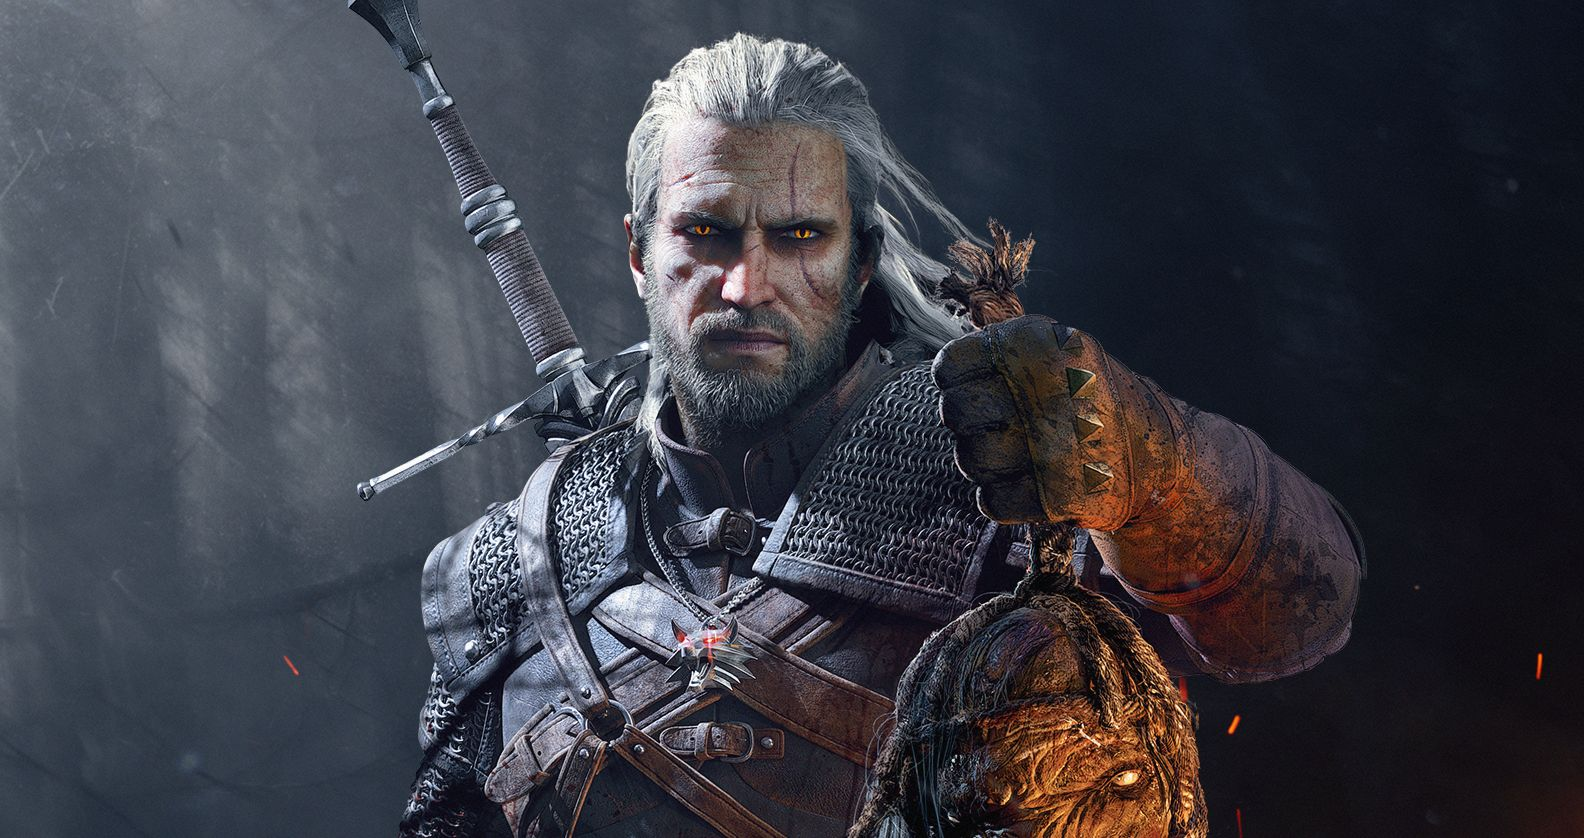 The Witcher 3: Wild Hunt's big patch 1 32 today is nothing to get